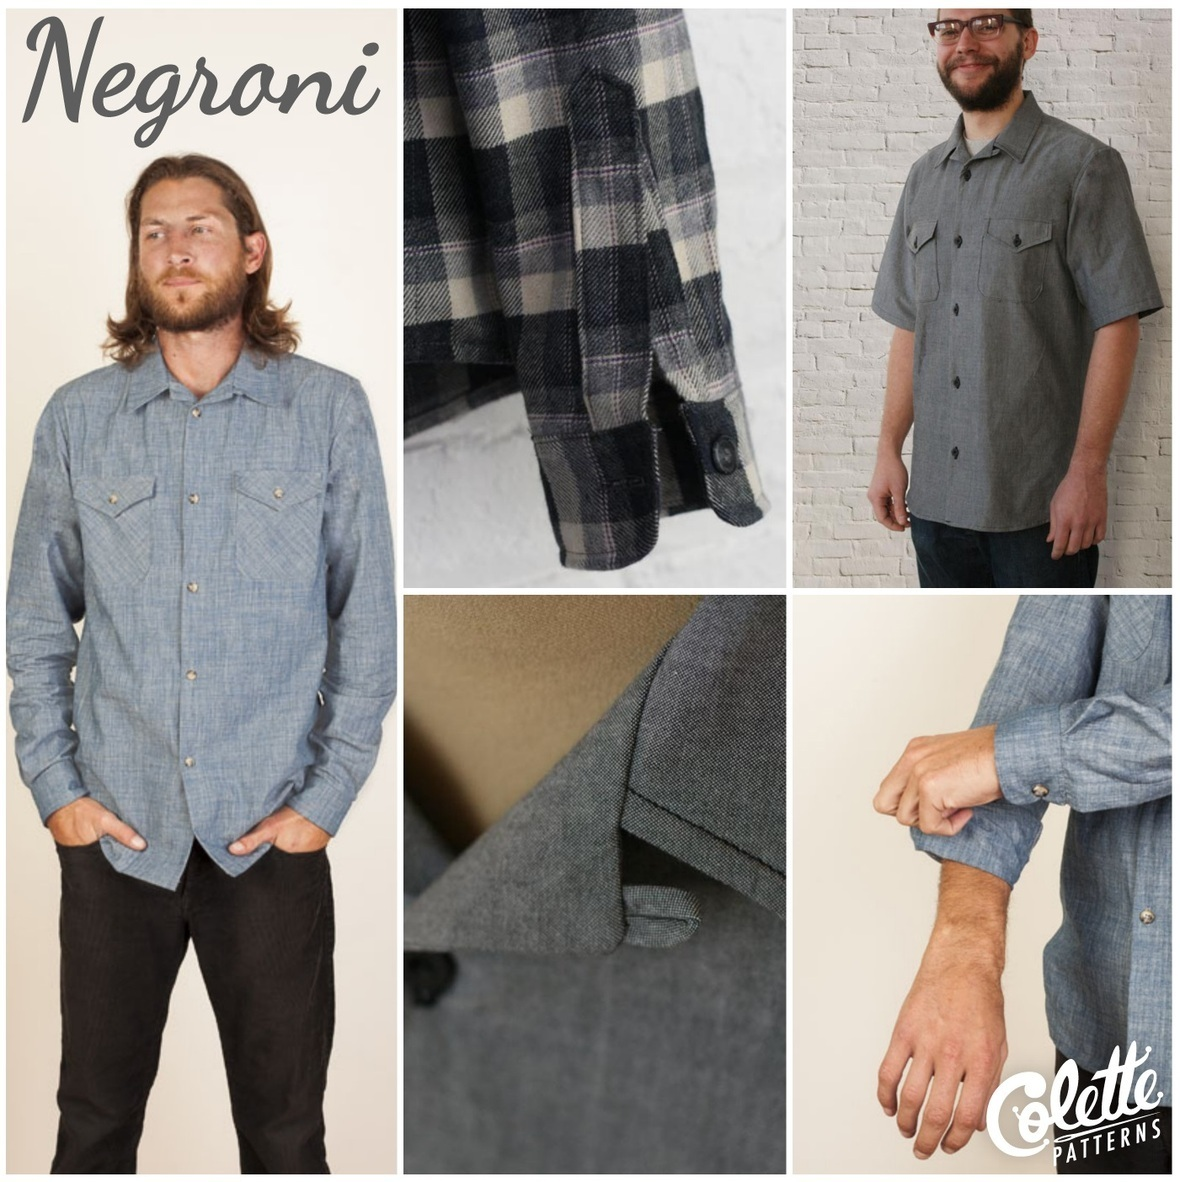 colette patterns negroni shirt sewing pattern